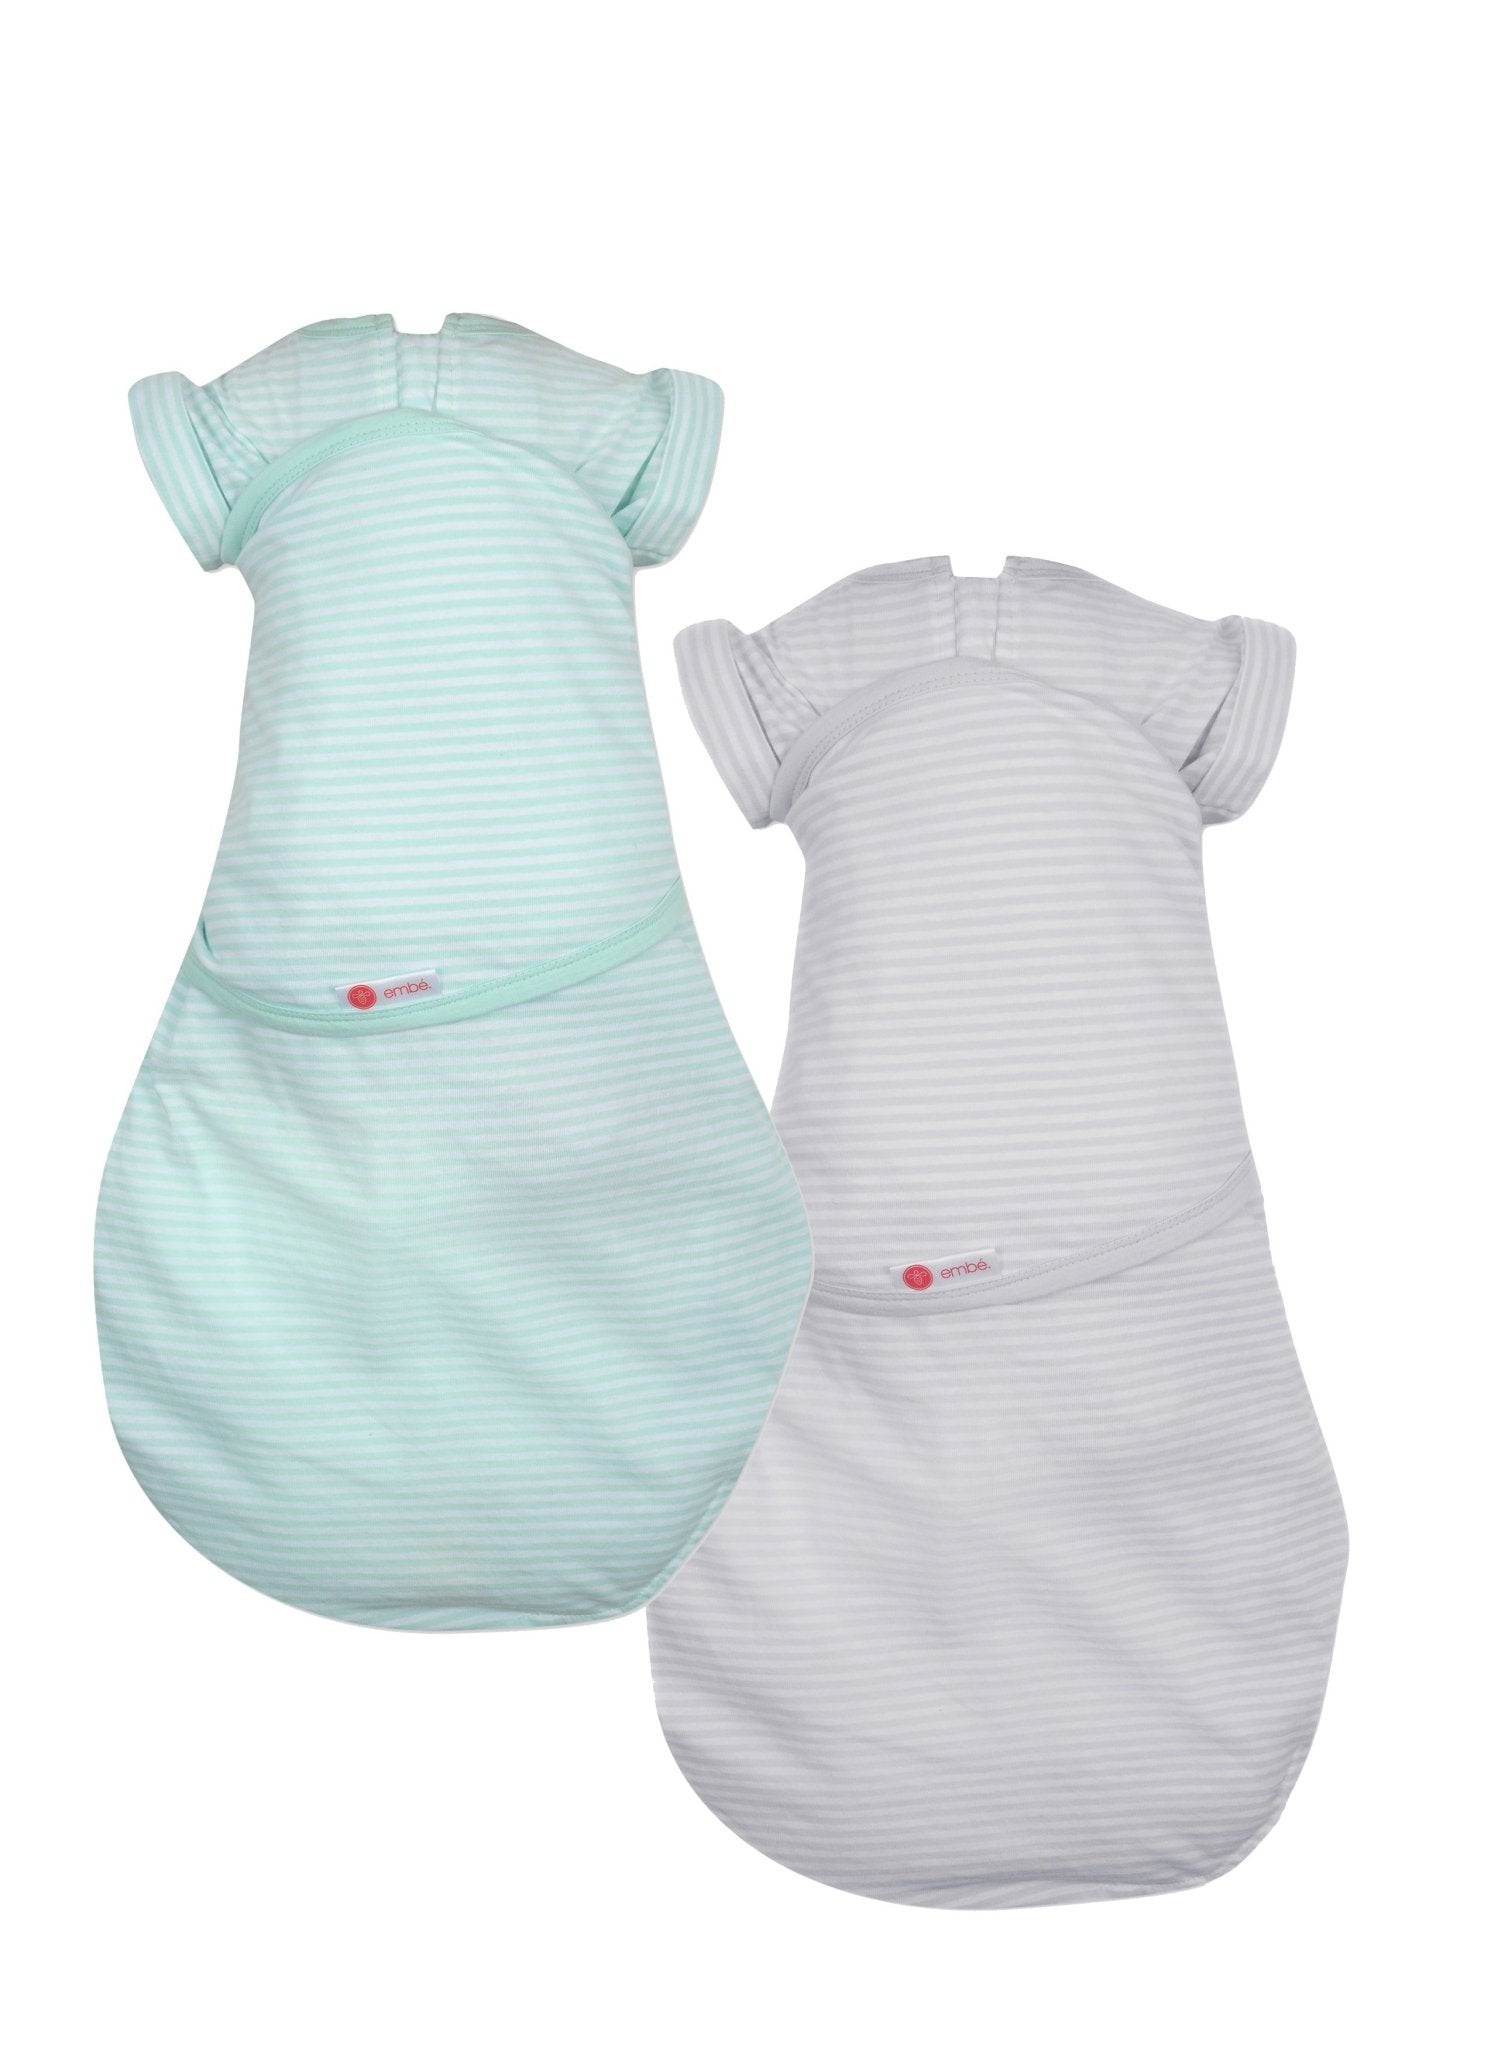 Transitional 2-Way Swaddle (3-6M) Combo - Mint + Grey Stripes - Mums and Bumps